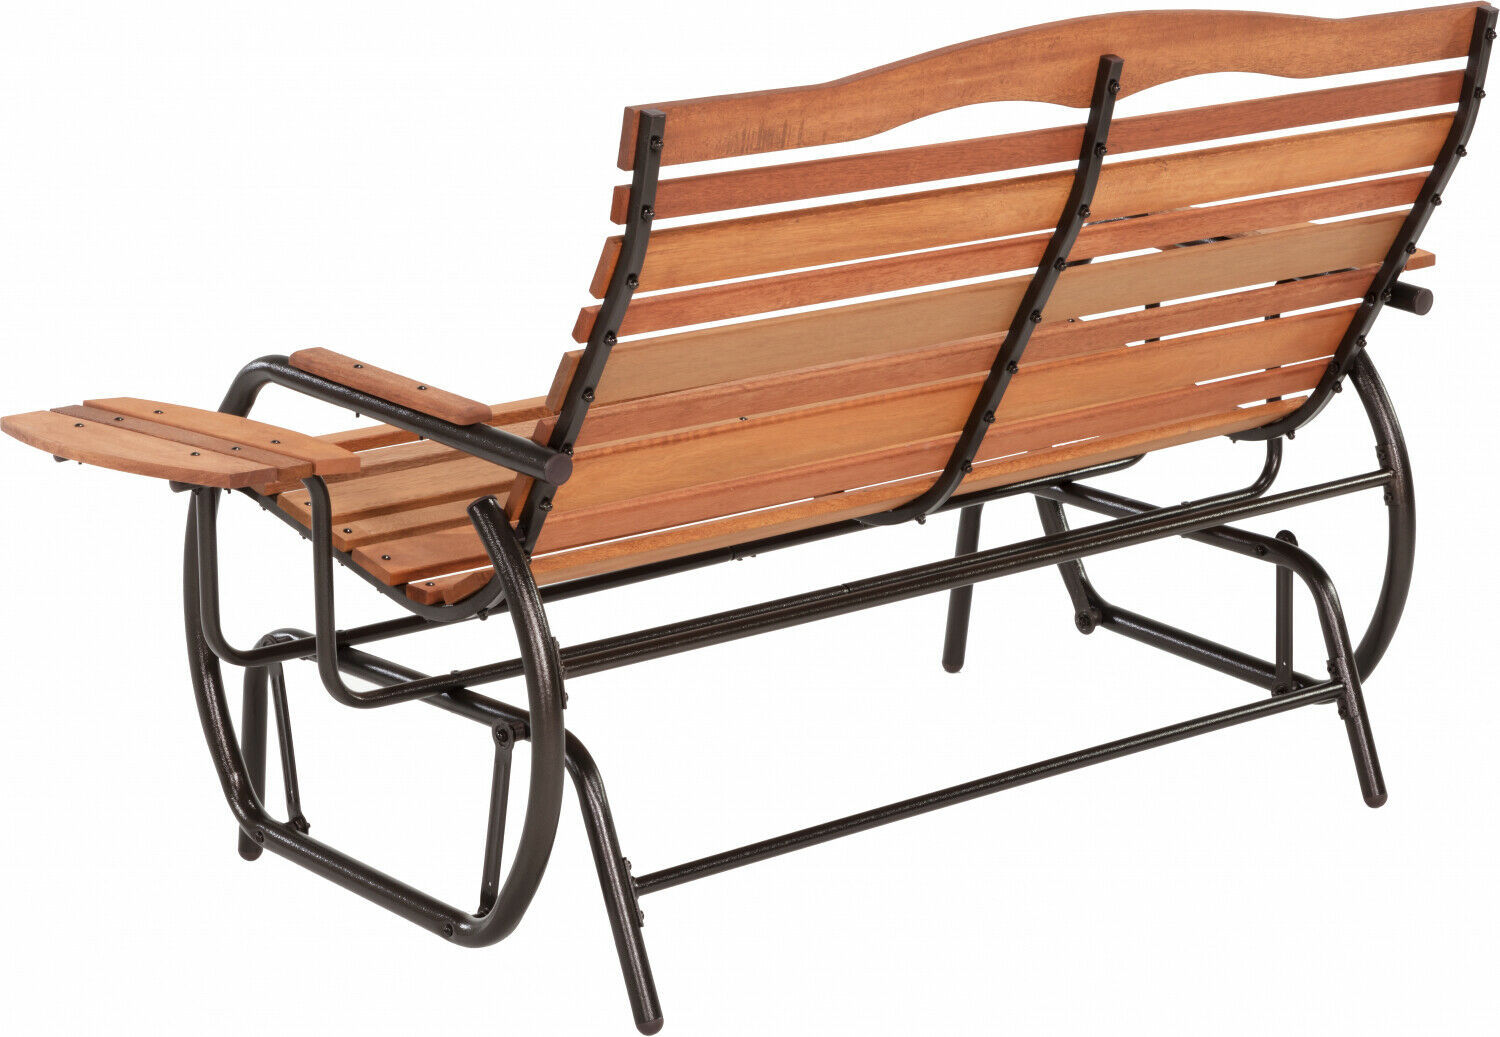 Wood Patio Bench Glider With Trays Outdoor Garden Porch Swing Chair Loveseat image 3